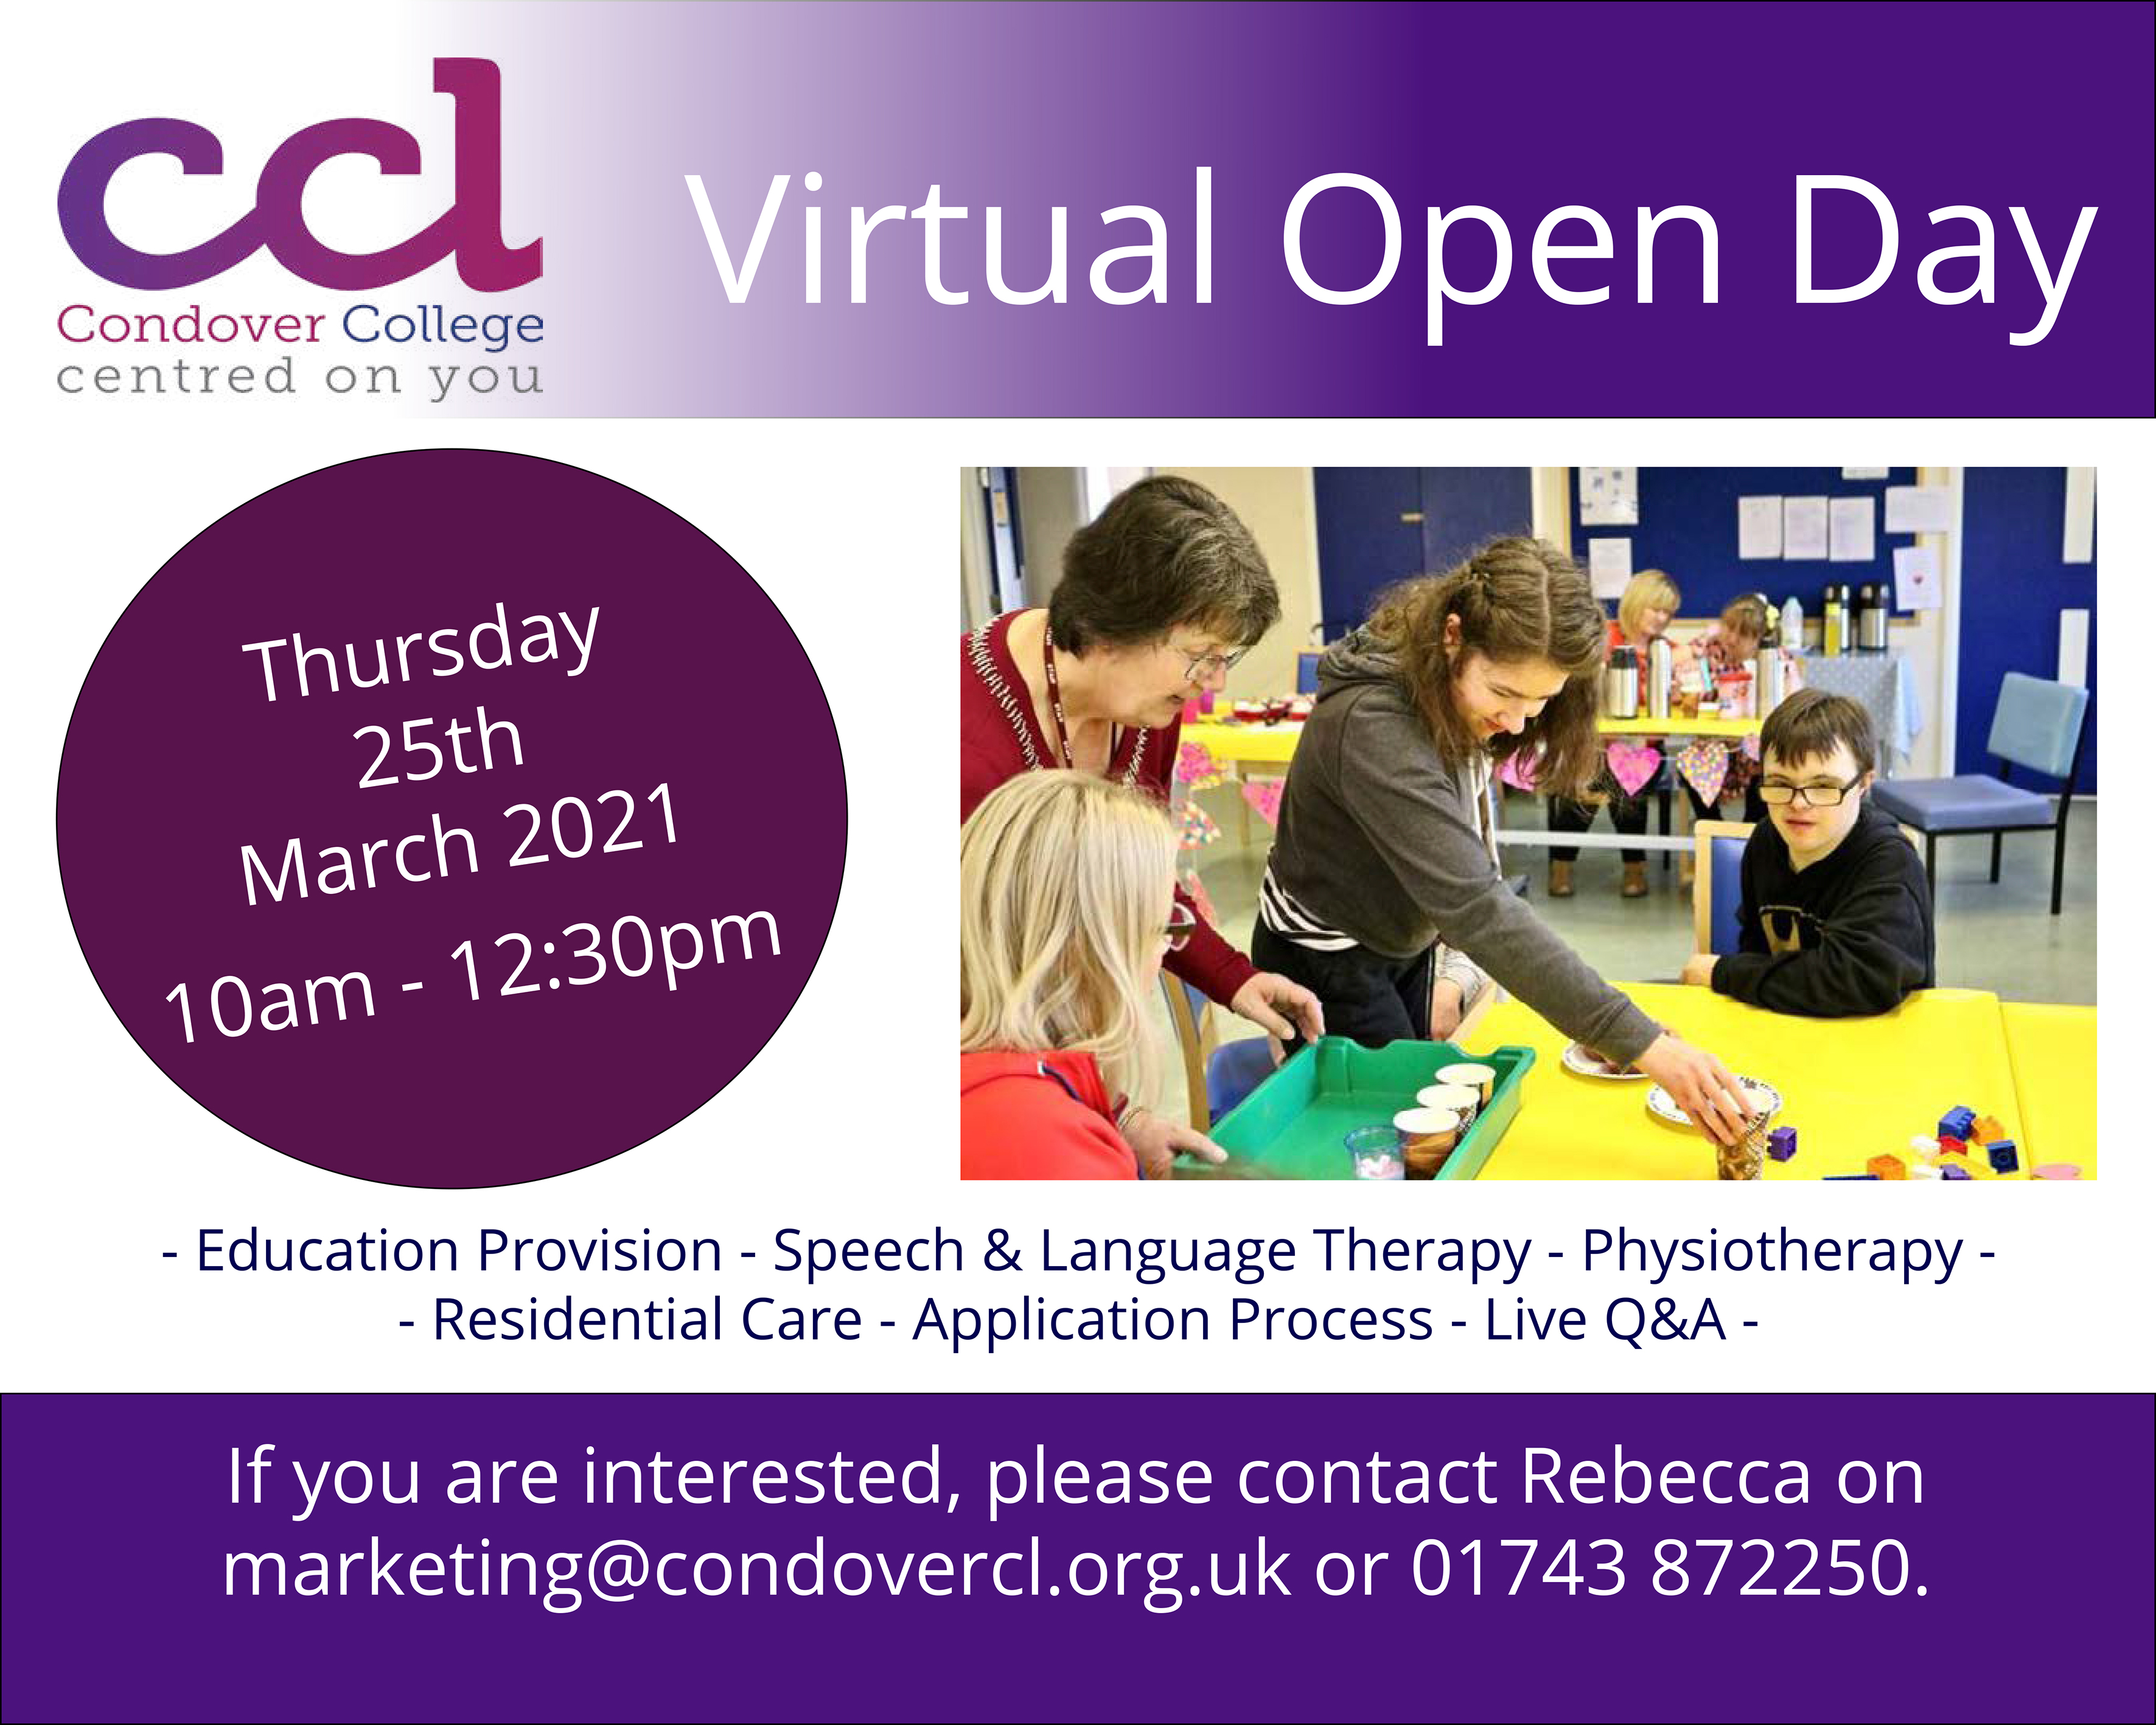 CCL's Virtual Open Day